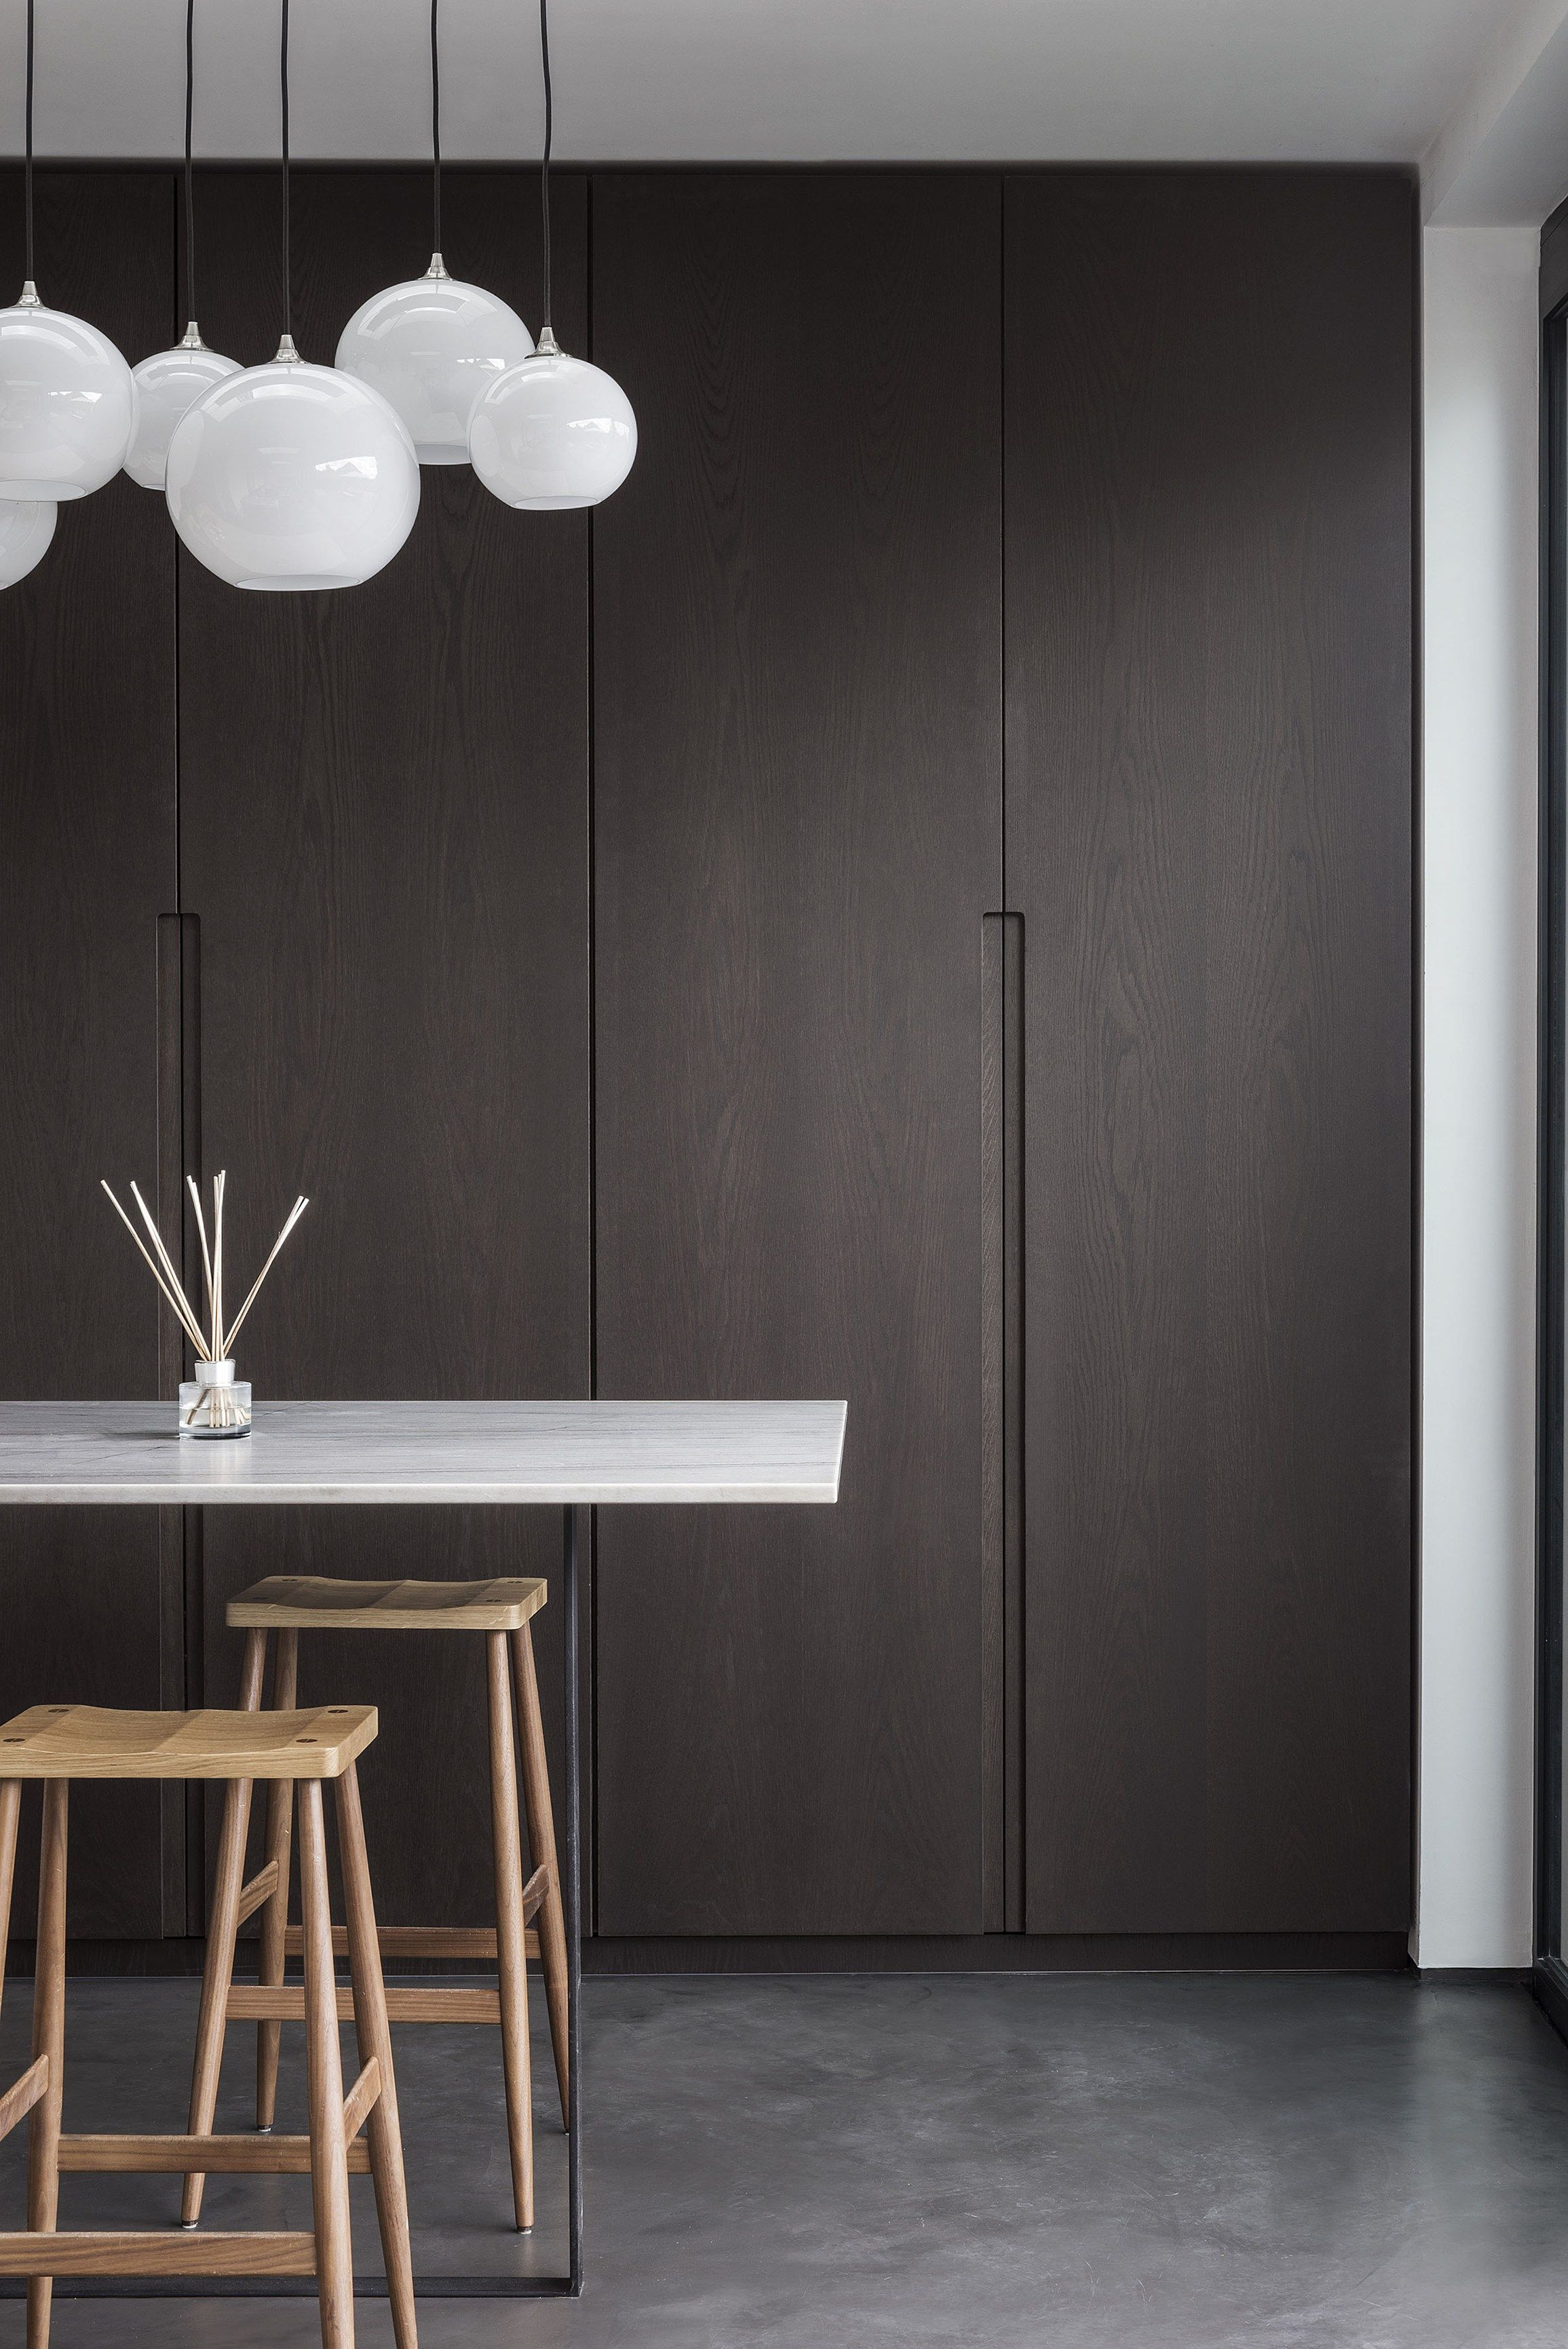 Innenarchitektur Esszimmer K6 D90 By Tm Italia Cucine Kitchen In Stone And Materic Dark